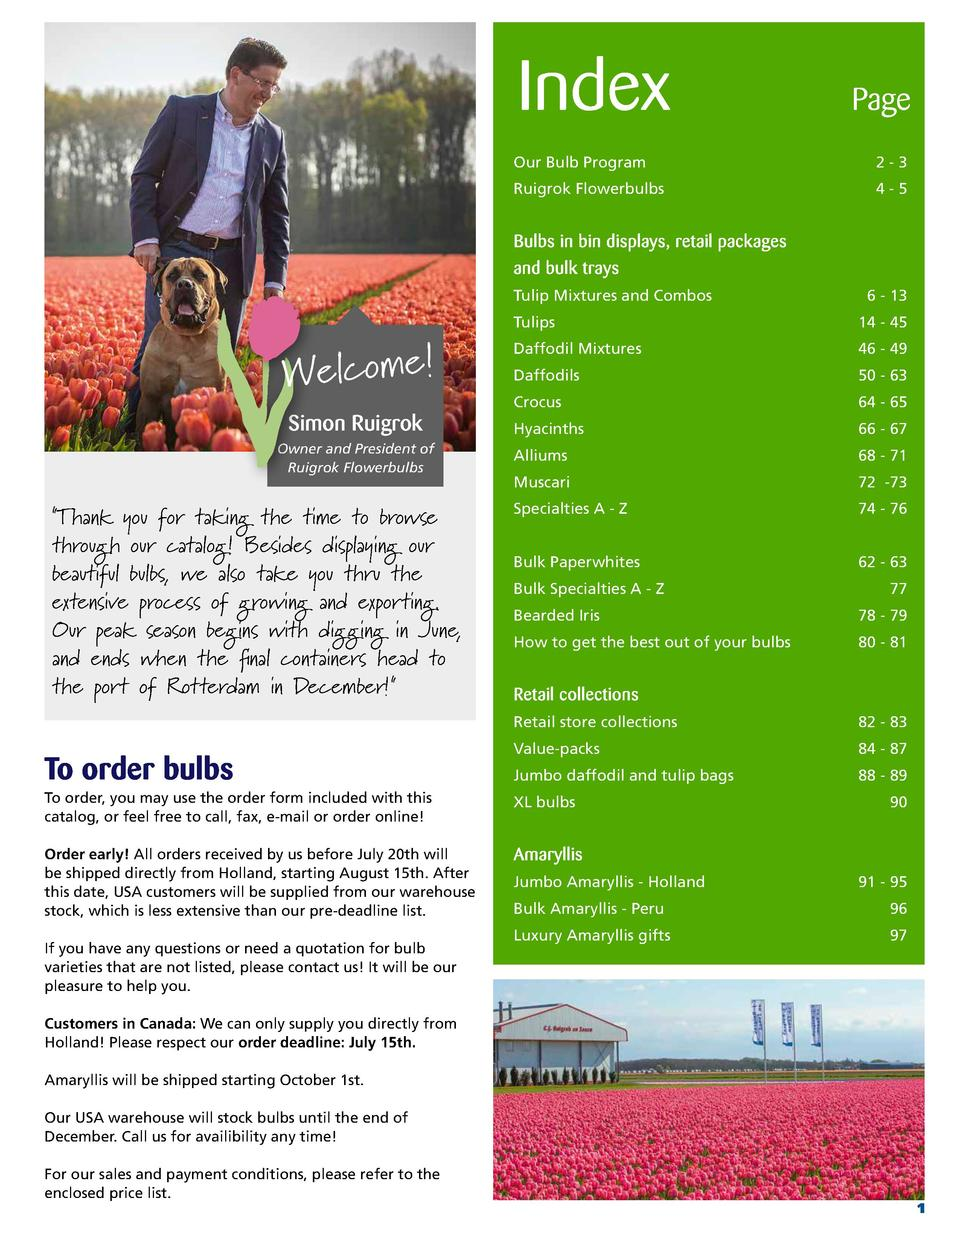 Index   Page  Our Bulb Program   2-3  Ruigrok Flowerbulbs   4-5     Bulbs in bin displays, retail packages and bulk trays ...